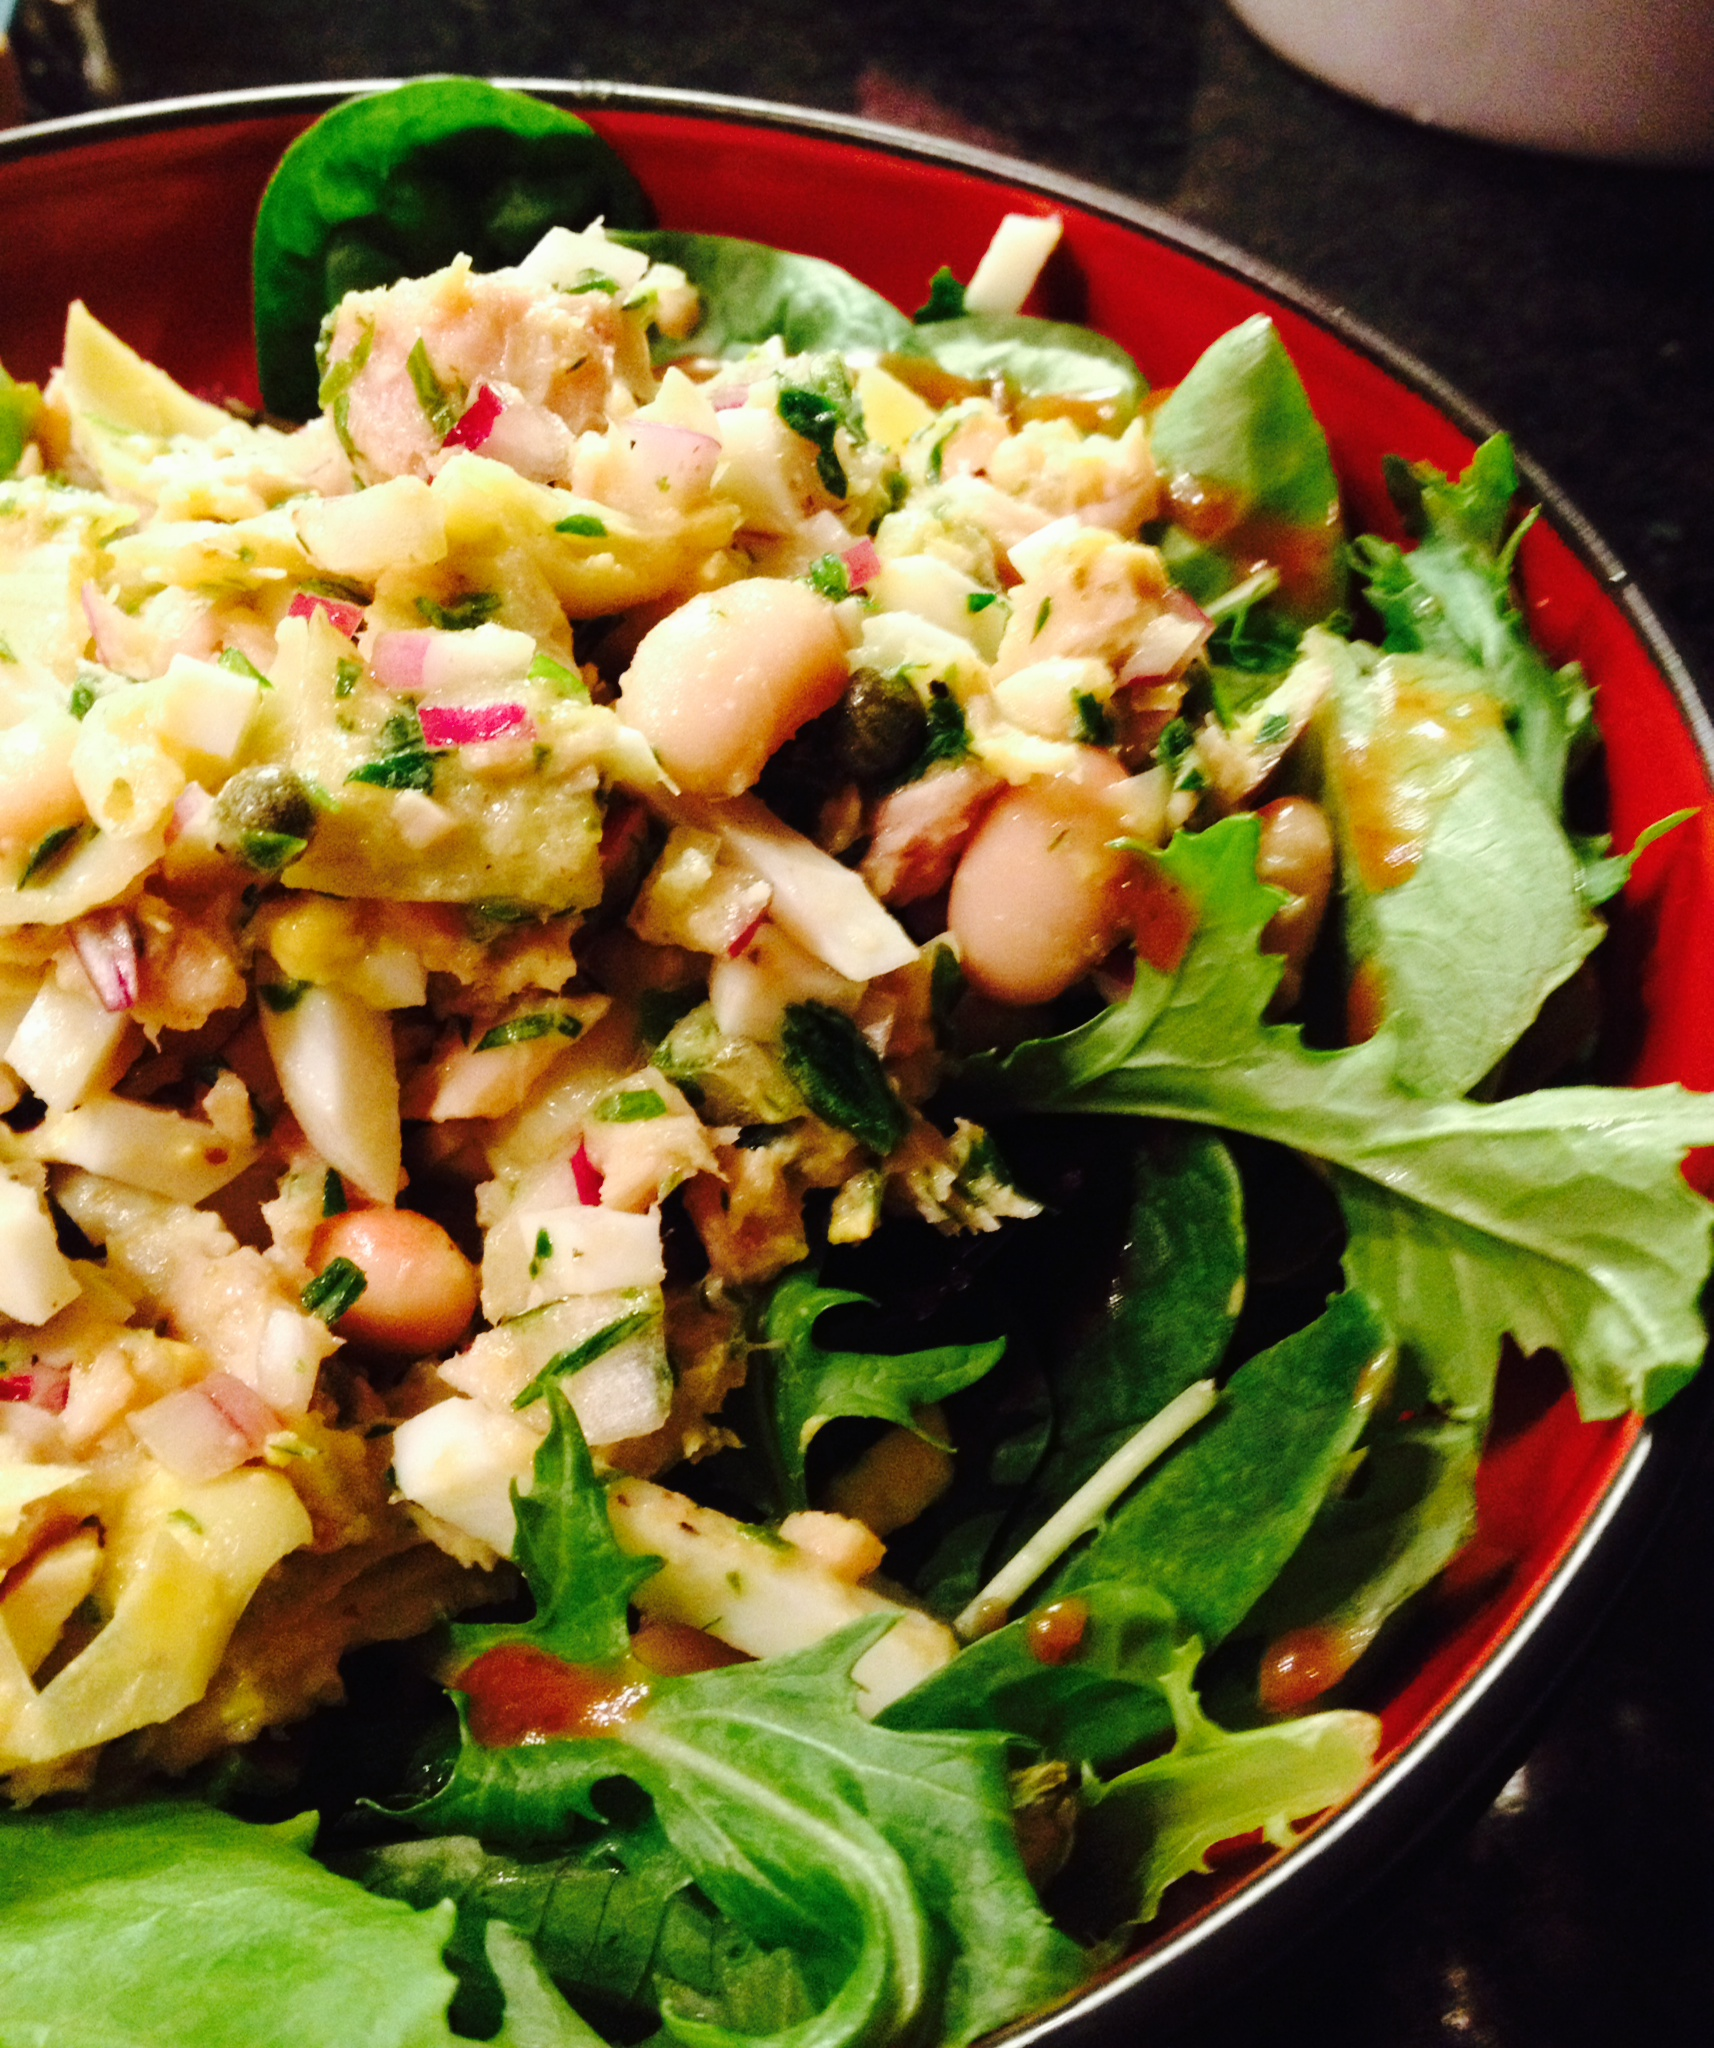 white bean, artichoke, tuna, and egg salad :: by radish*rose